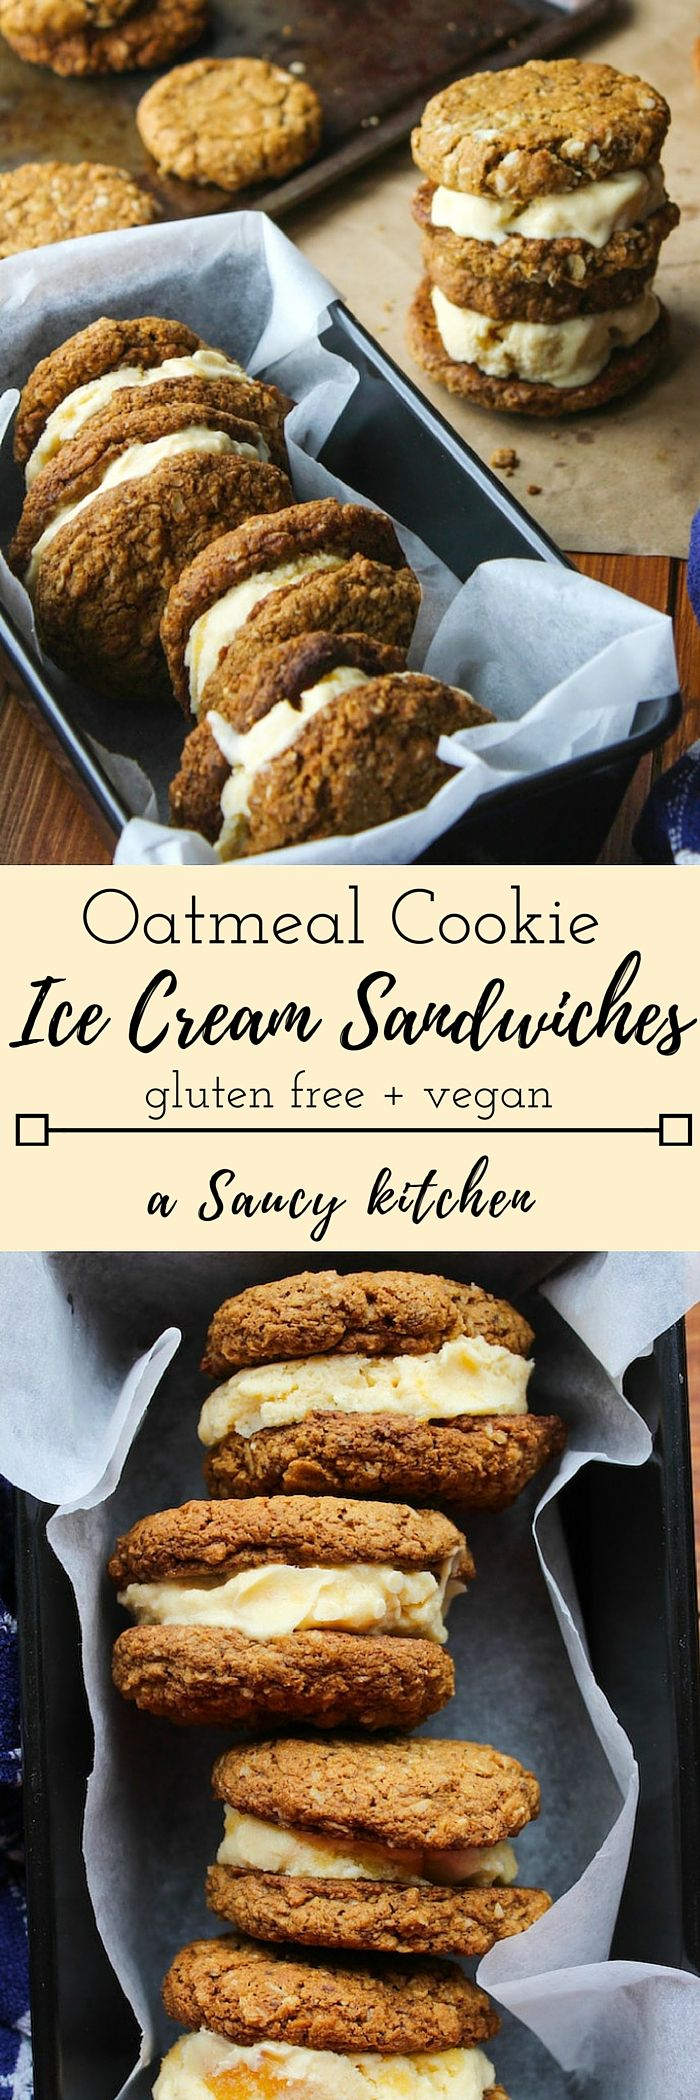 Gluten Free & Vegan oatmeal cookies - soft, chewy, and perfect for turning into ice cream cookie sandwiches!